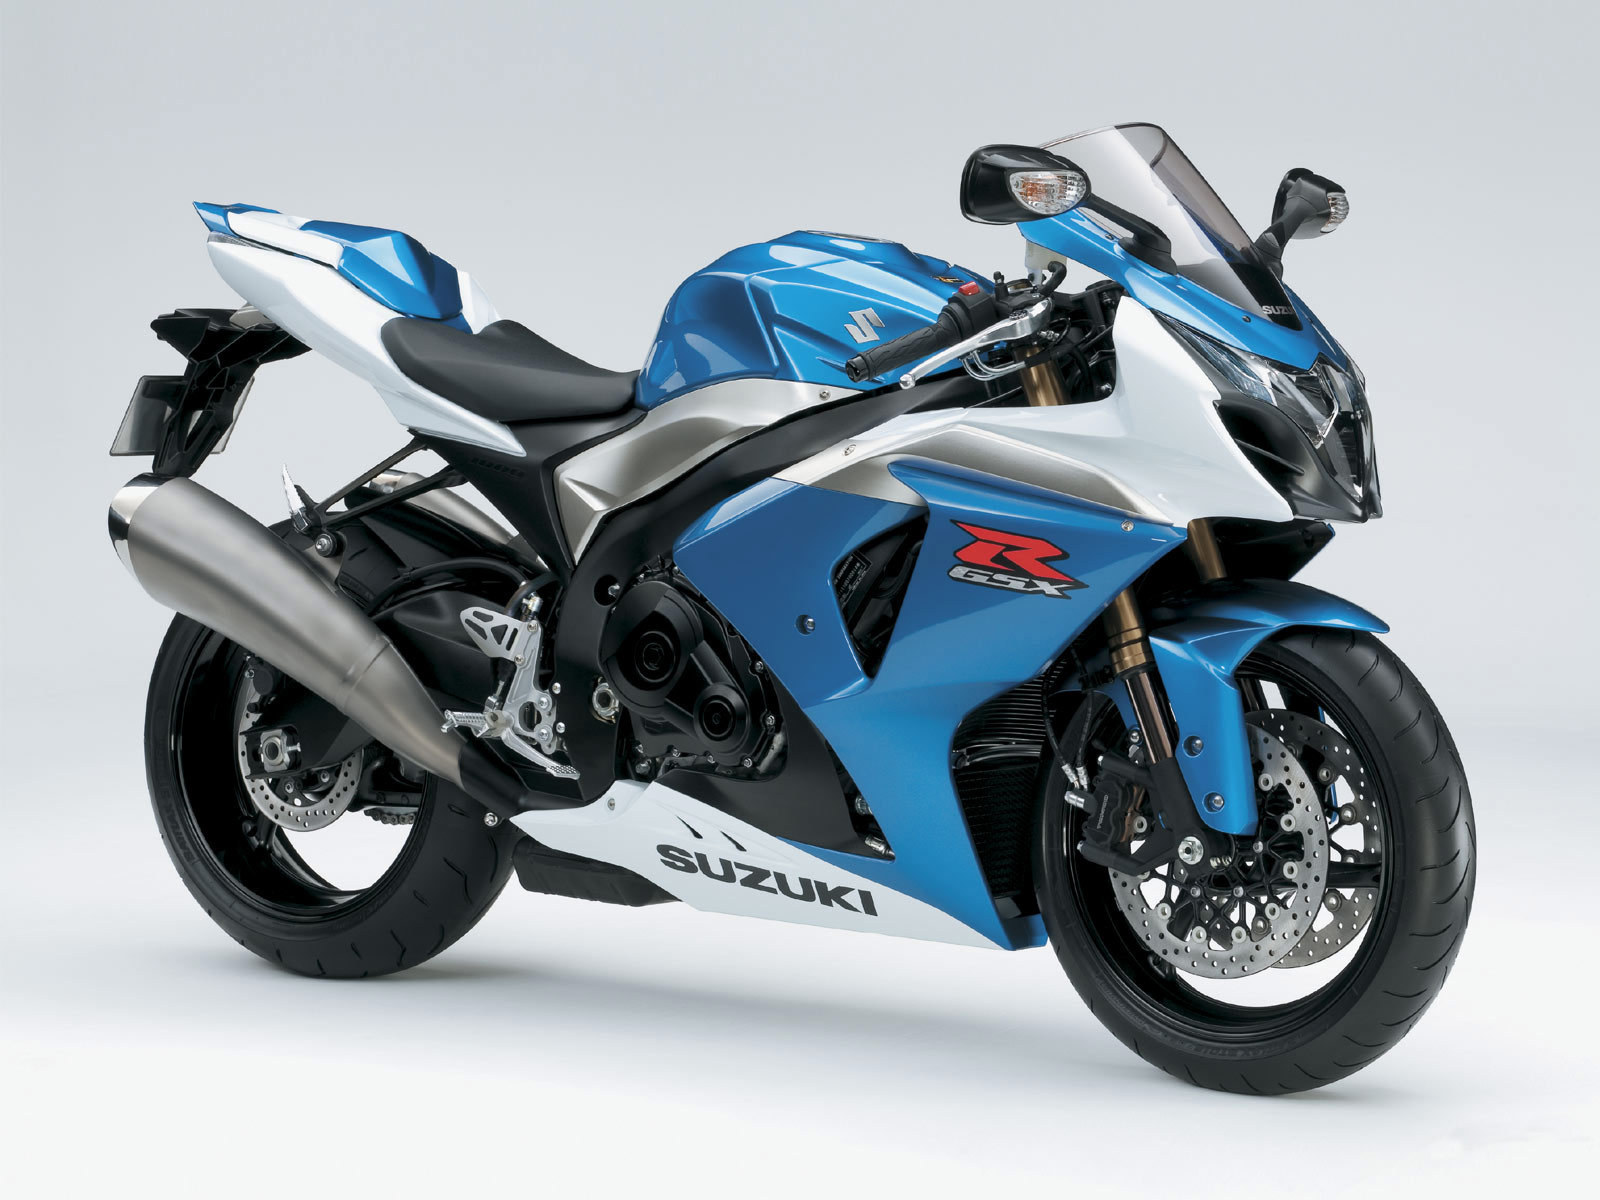 suzuki gsx r 1000 motorcycles wallpaper 14486725 fanpop. Black Bedroom Furniture Sets. Home Design Ideas